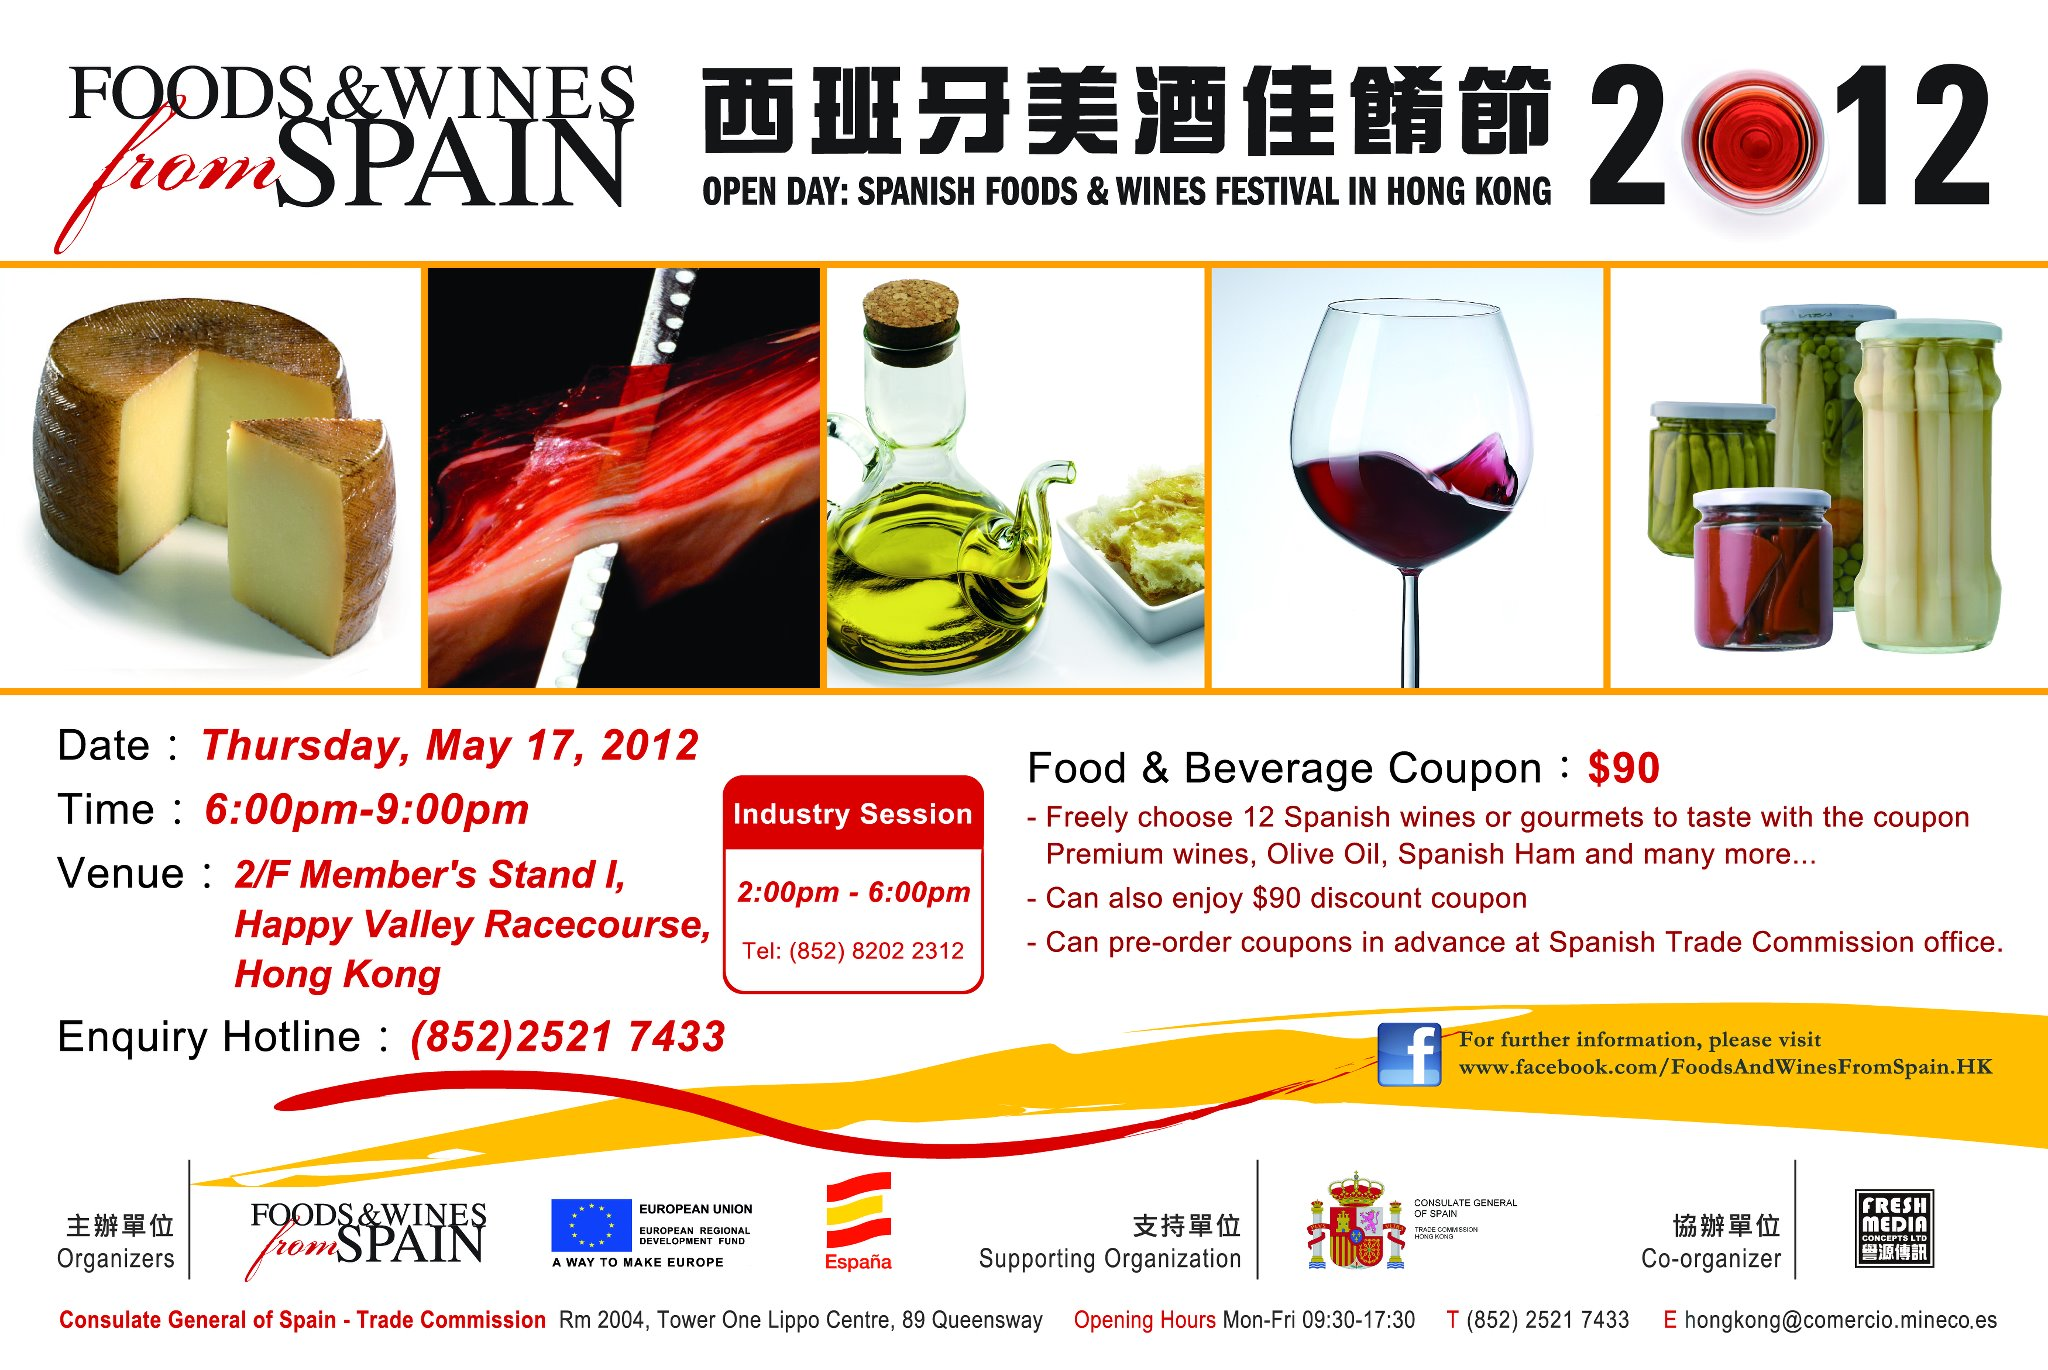 西班牙美酒佳餚節 Spanish Foods & Wines Festival 2012 (10張免費門票送給WINELSIT.HK會員 10 Free Tickets for members)